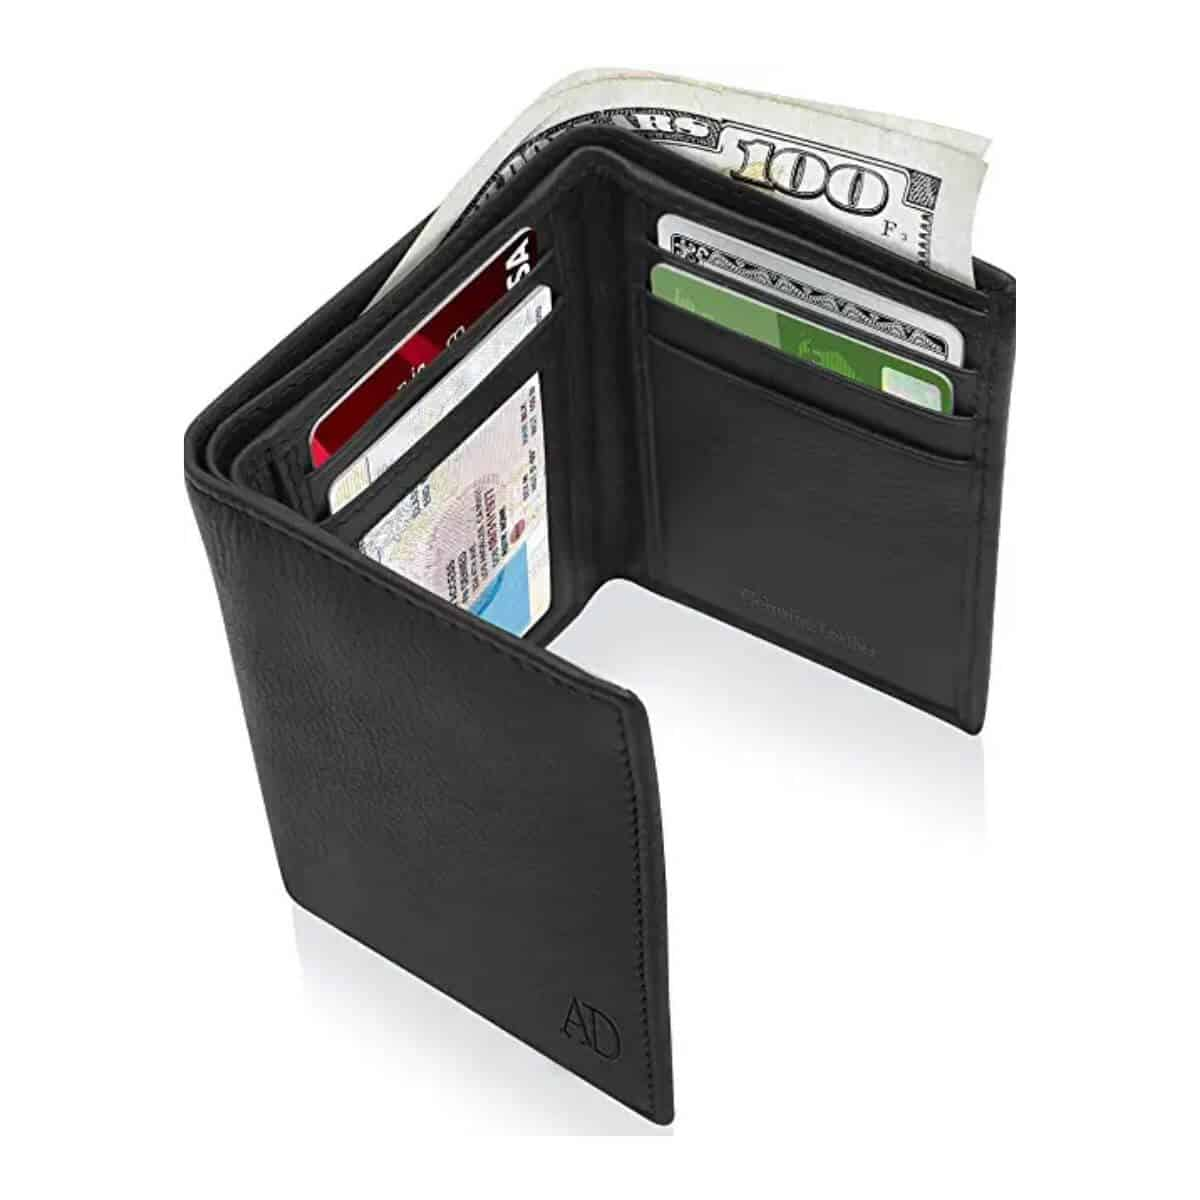 Black leather tri-fold wallet with cards and cash in it.